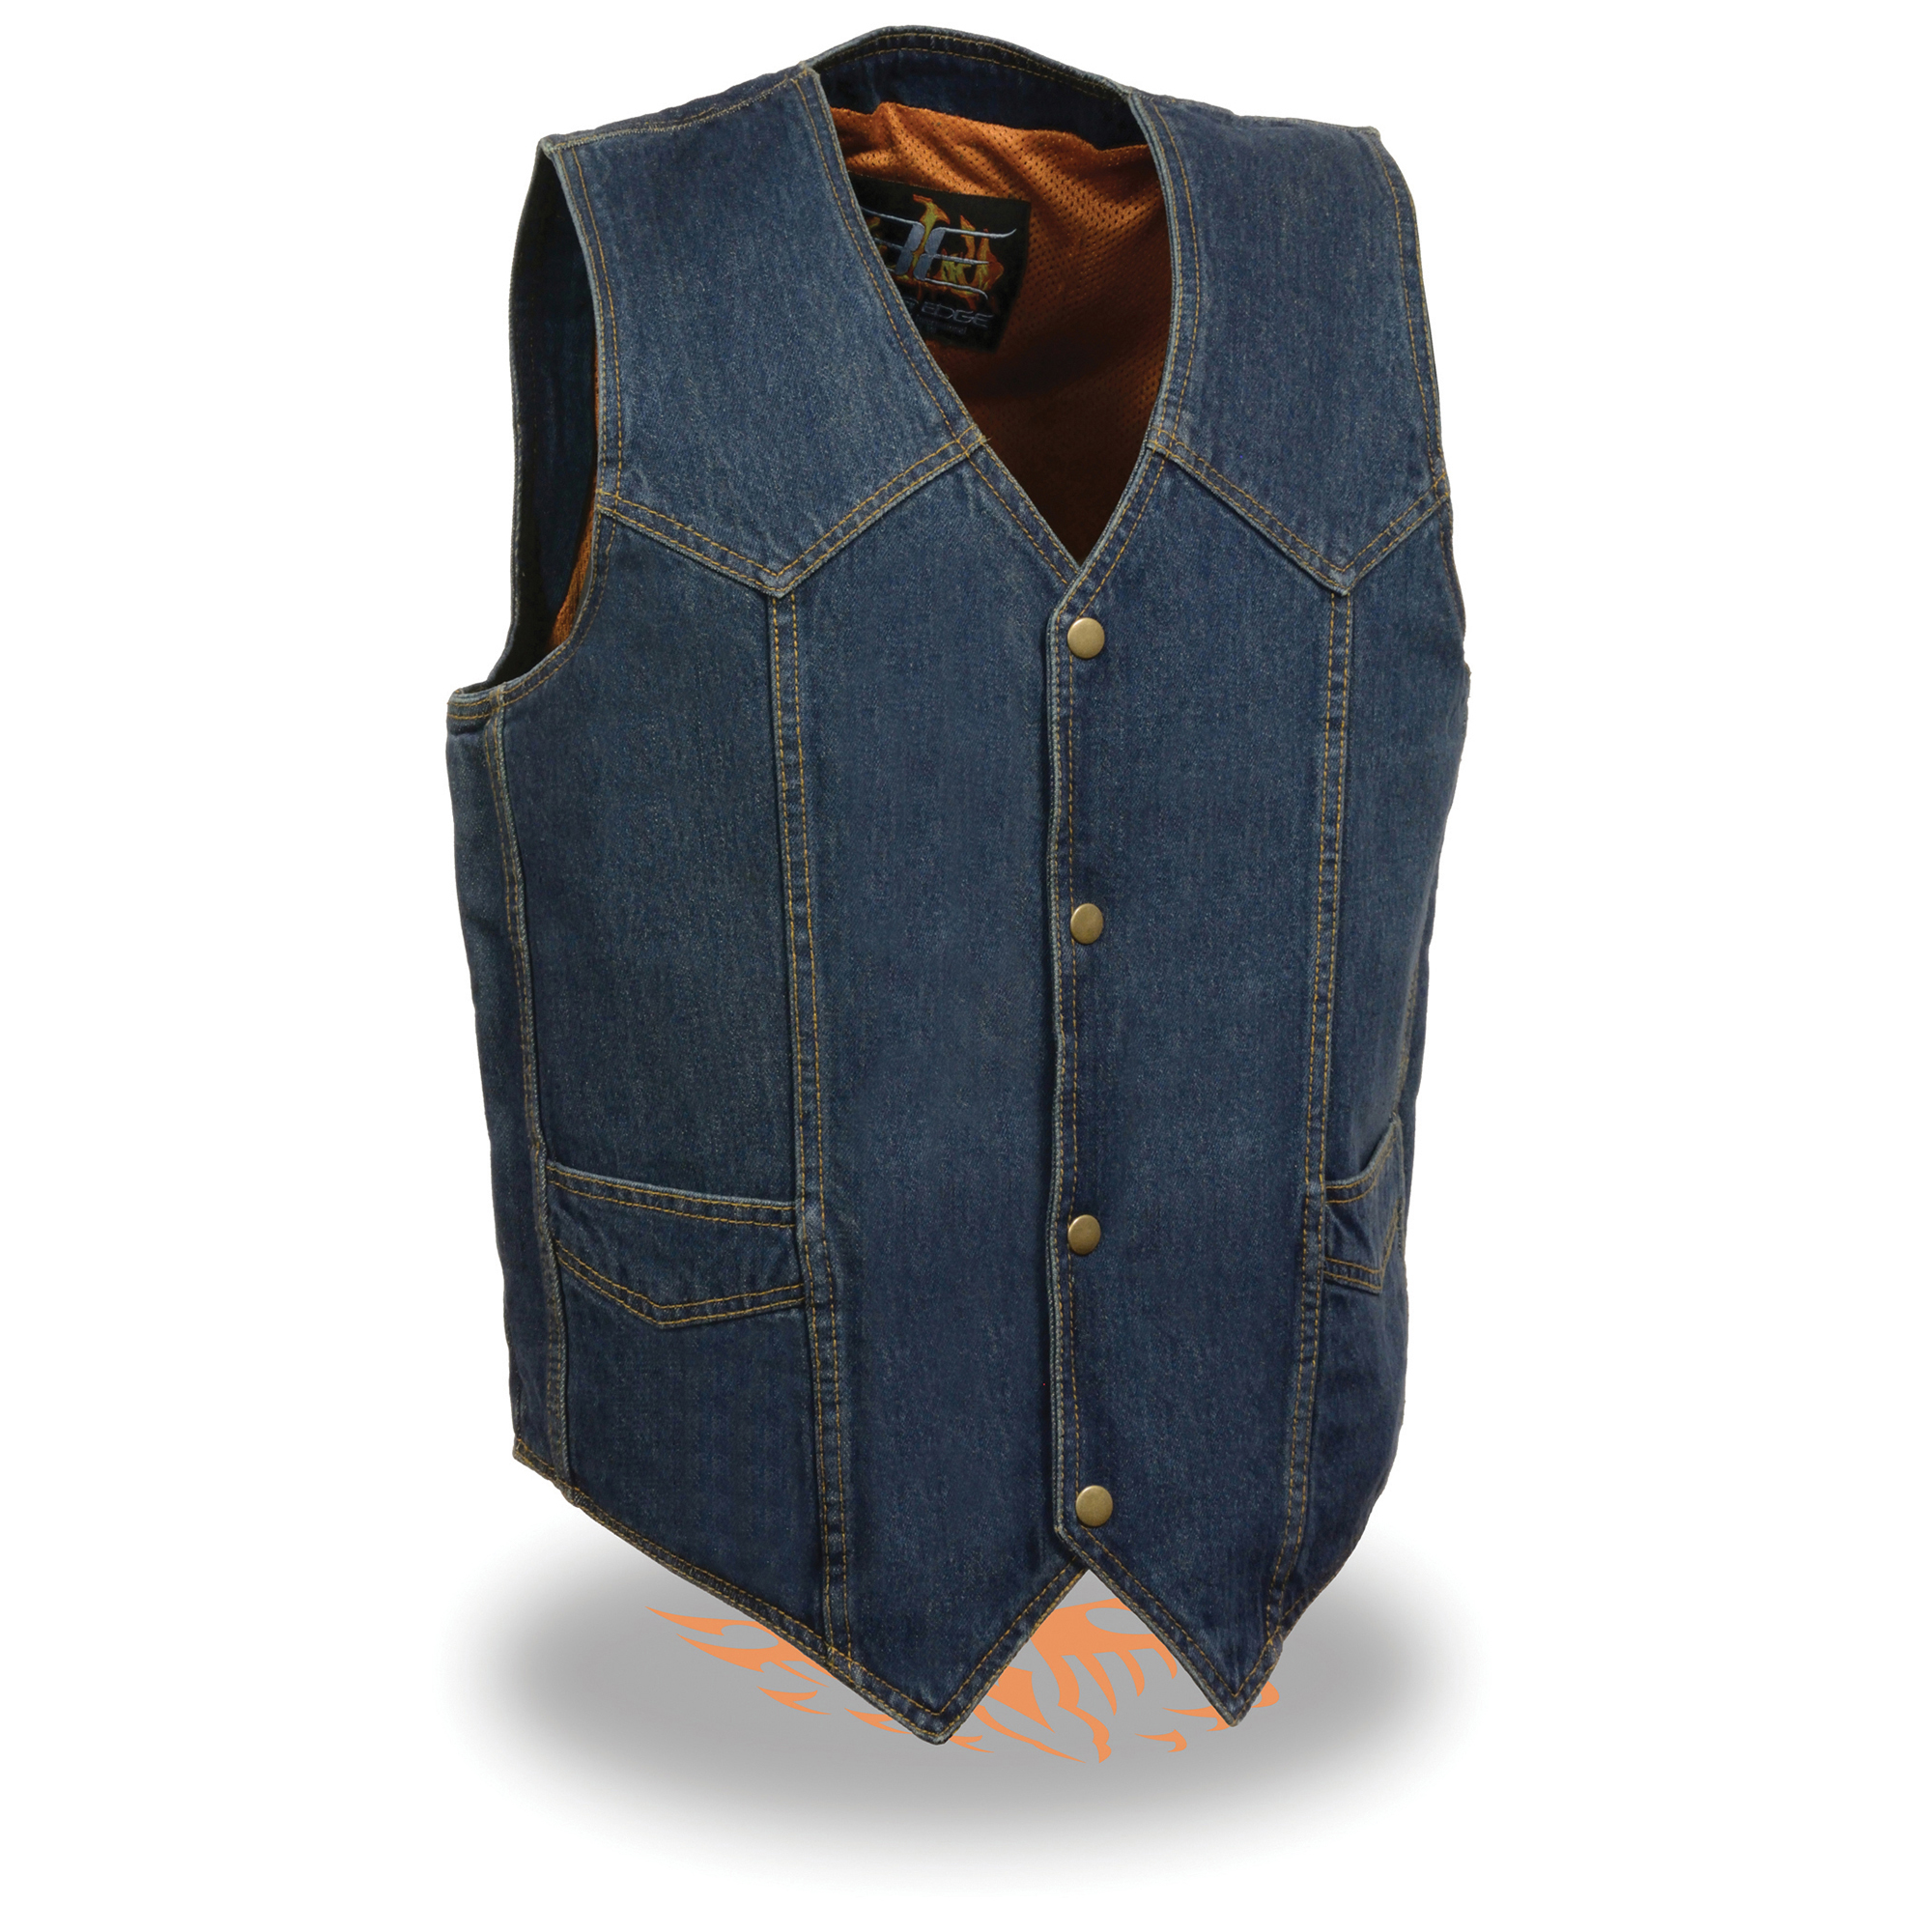 c563417cca3d8 DM1310-BLUE - Men s Classic Snap Front Denim Biker Vest